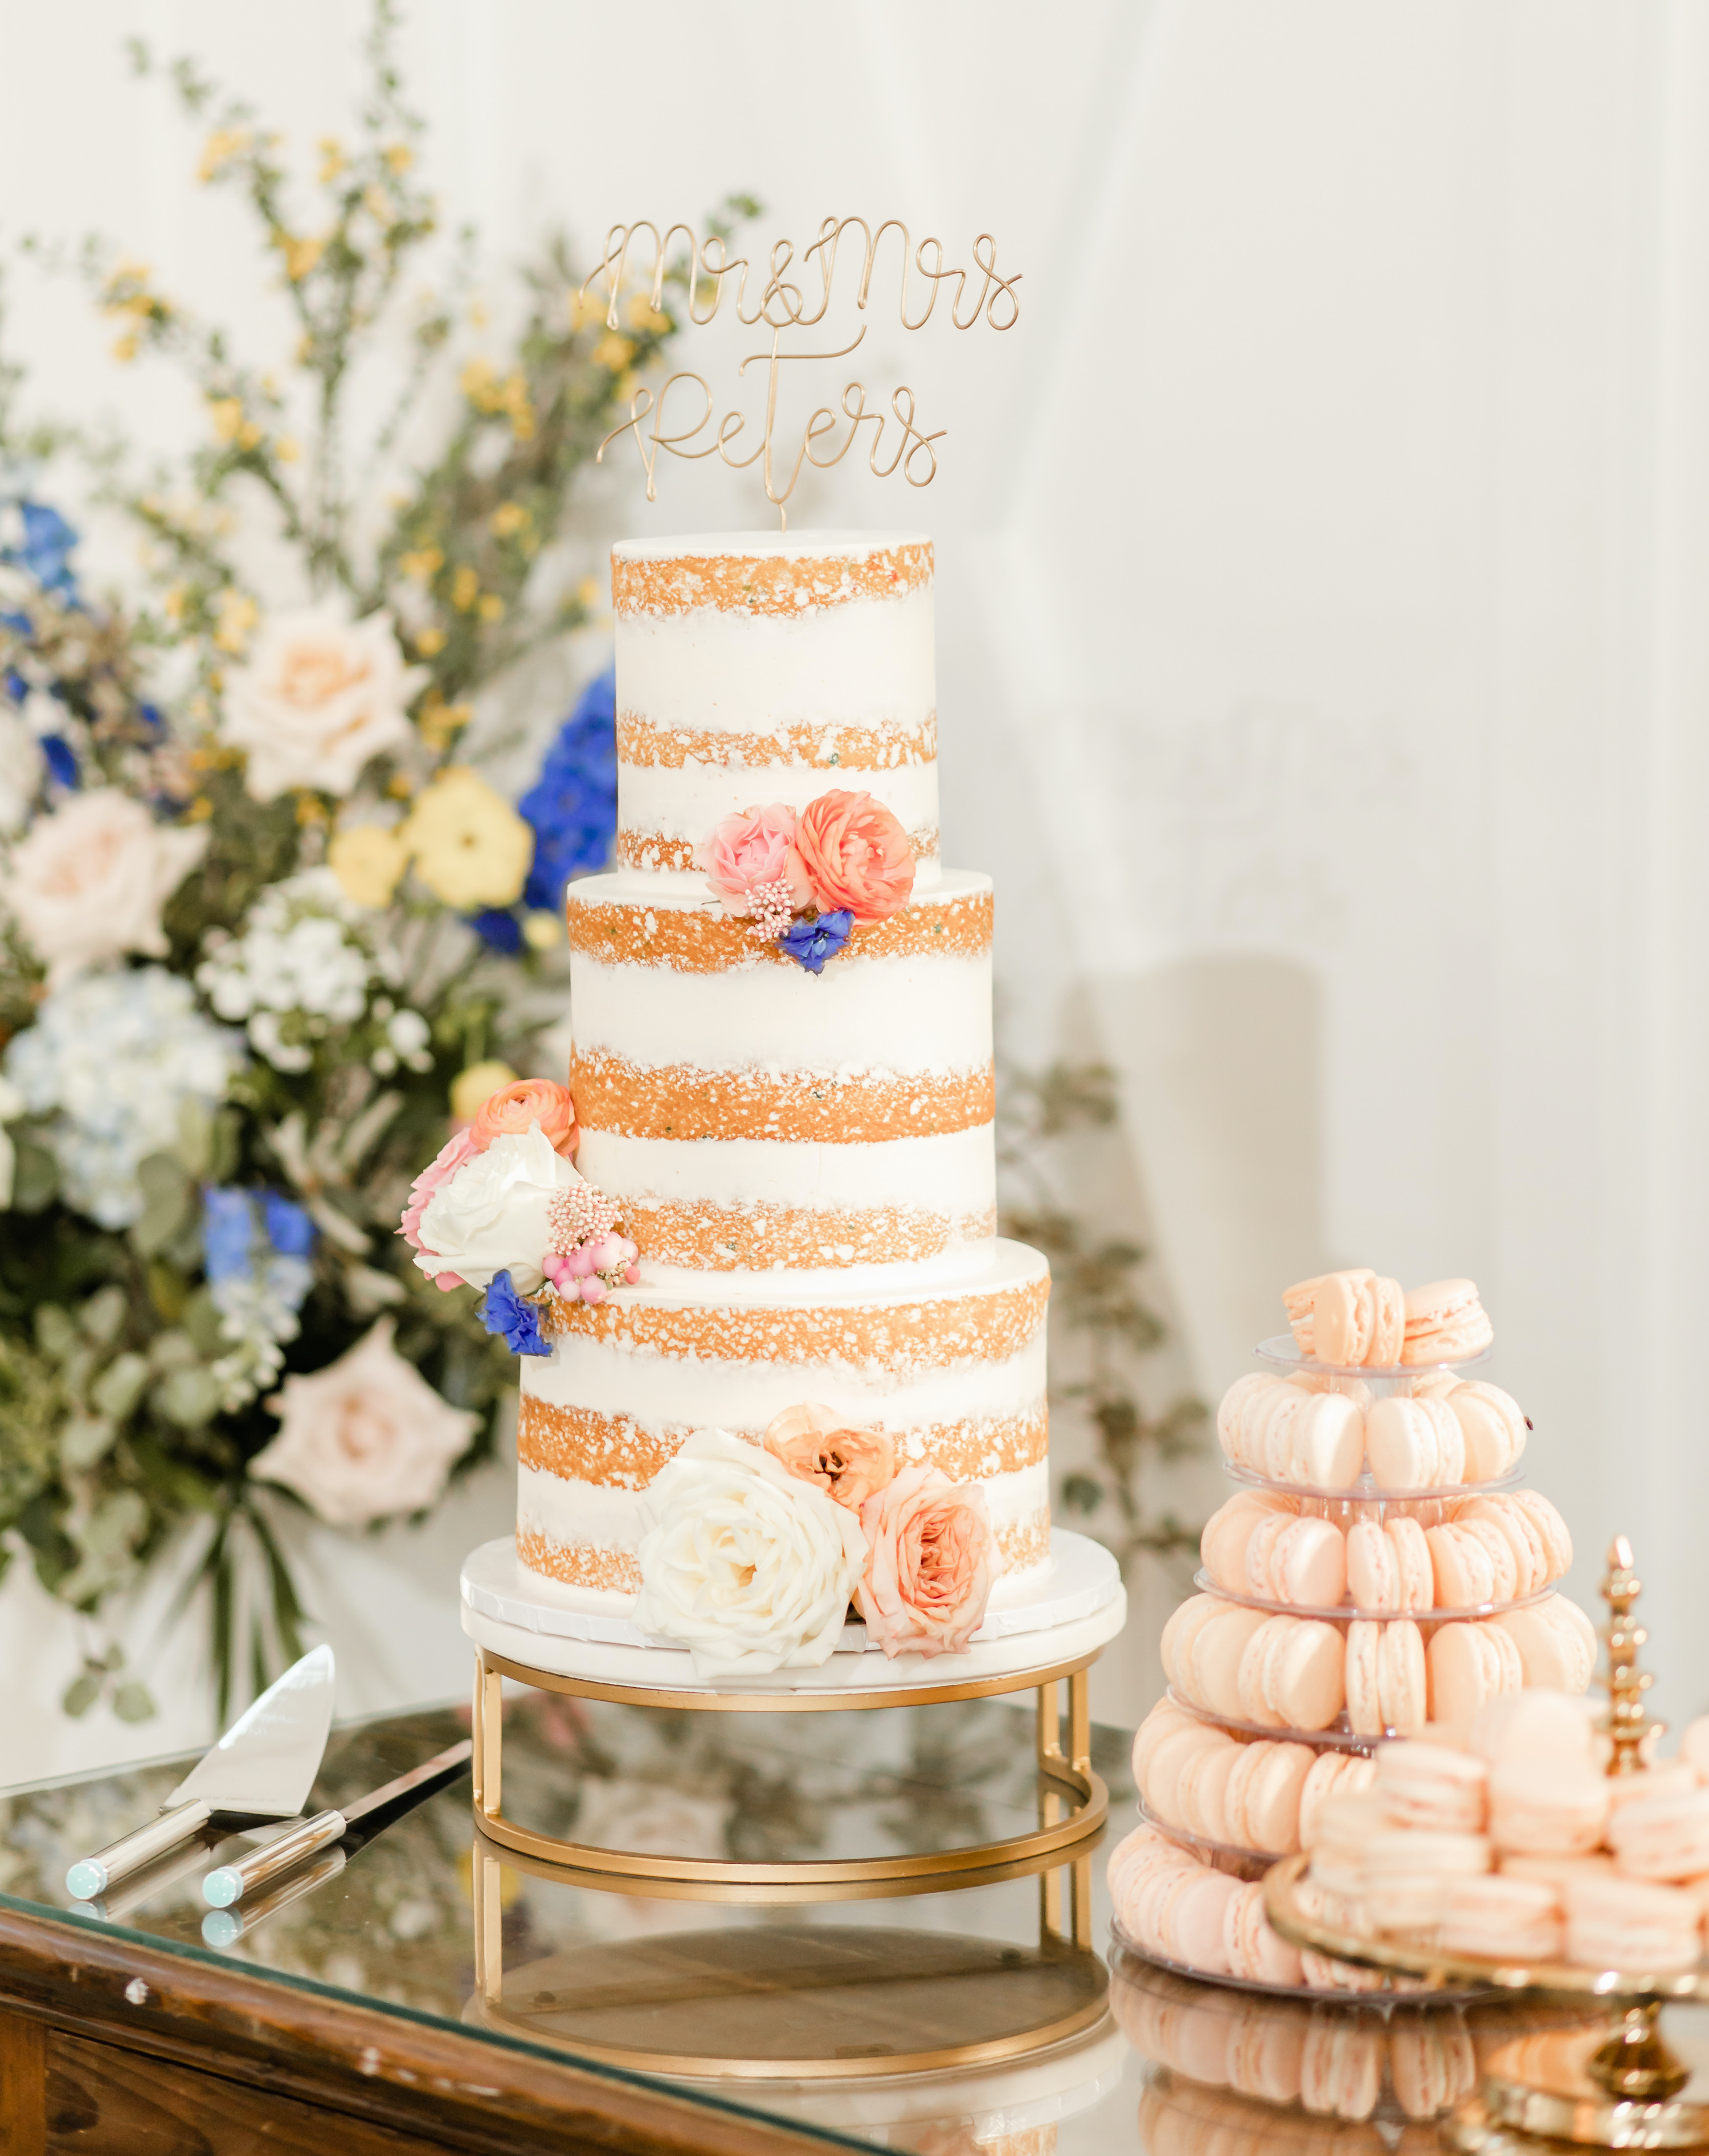 A beautiful cake with white frosting and peach macarons next to it.